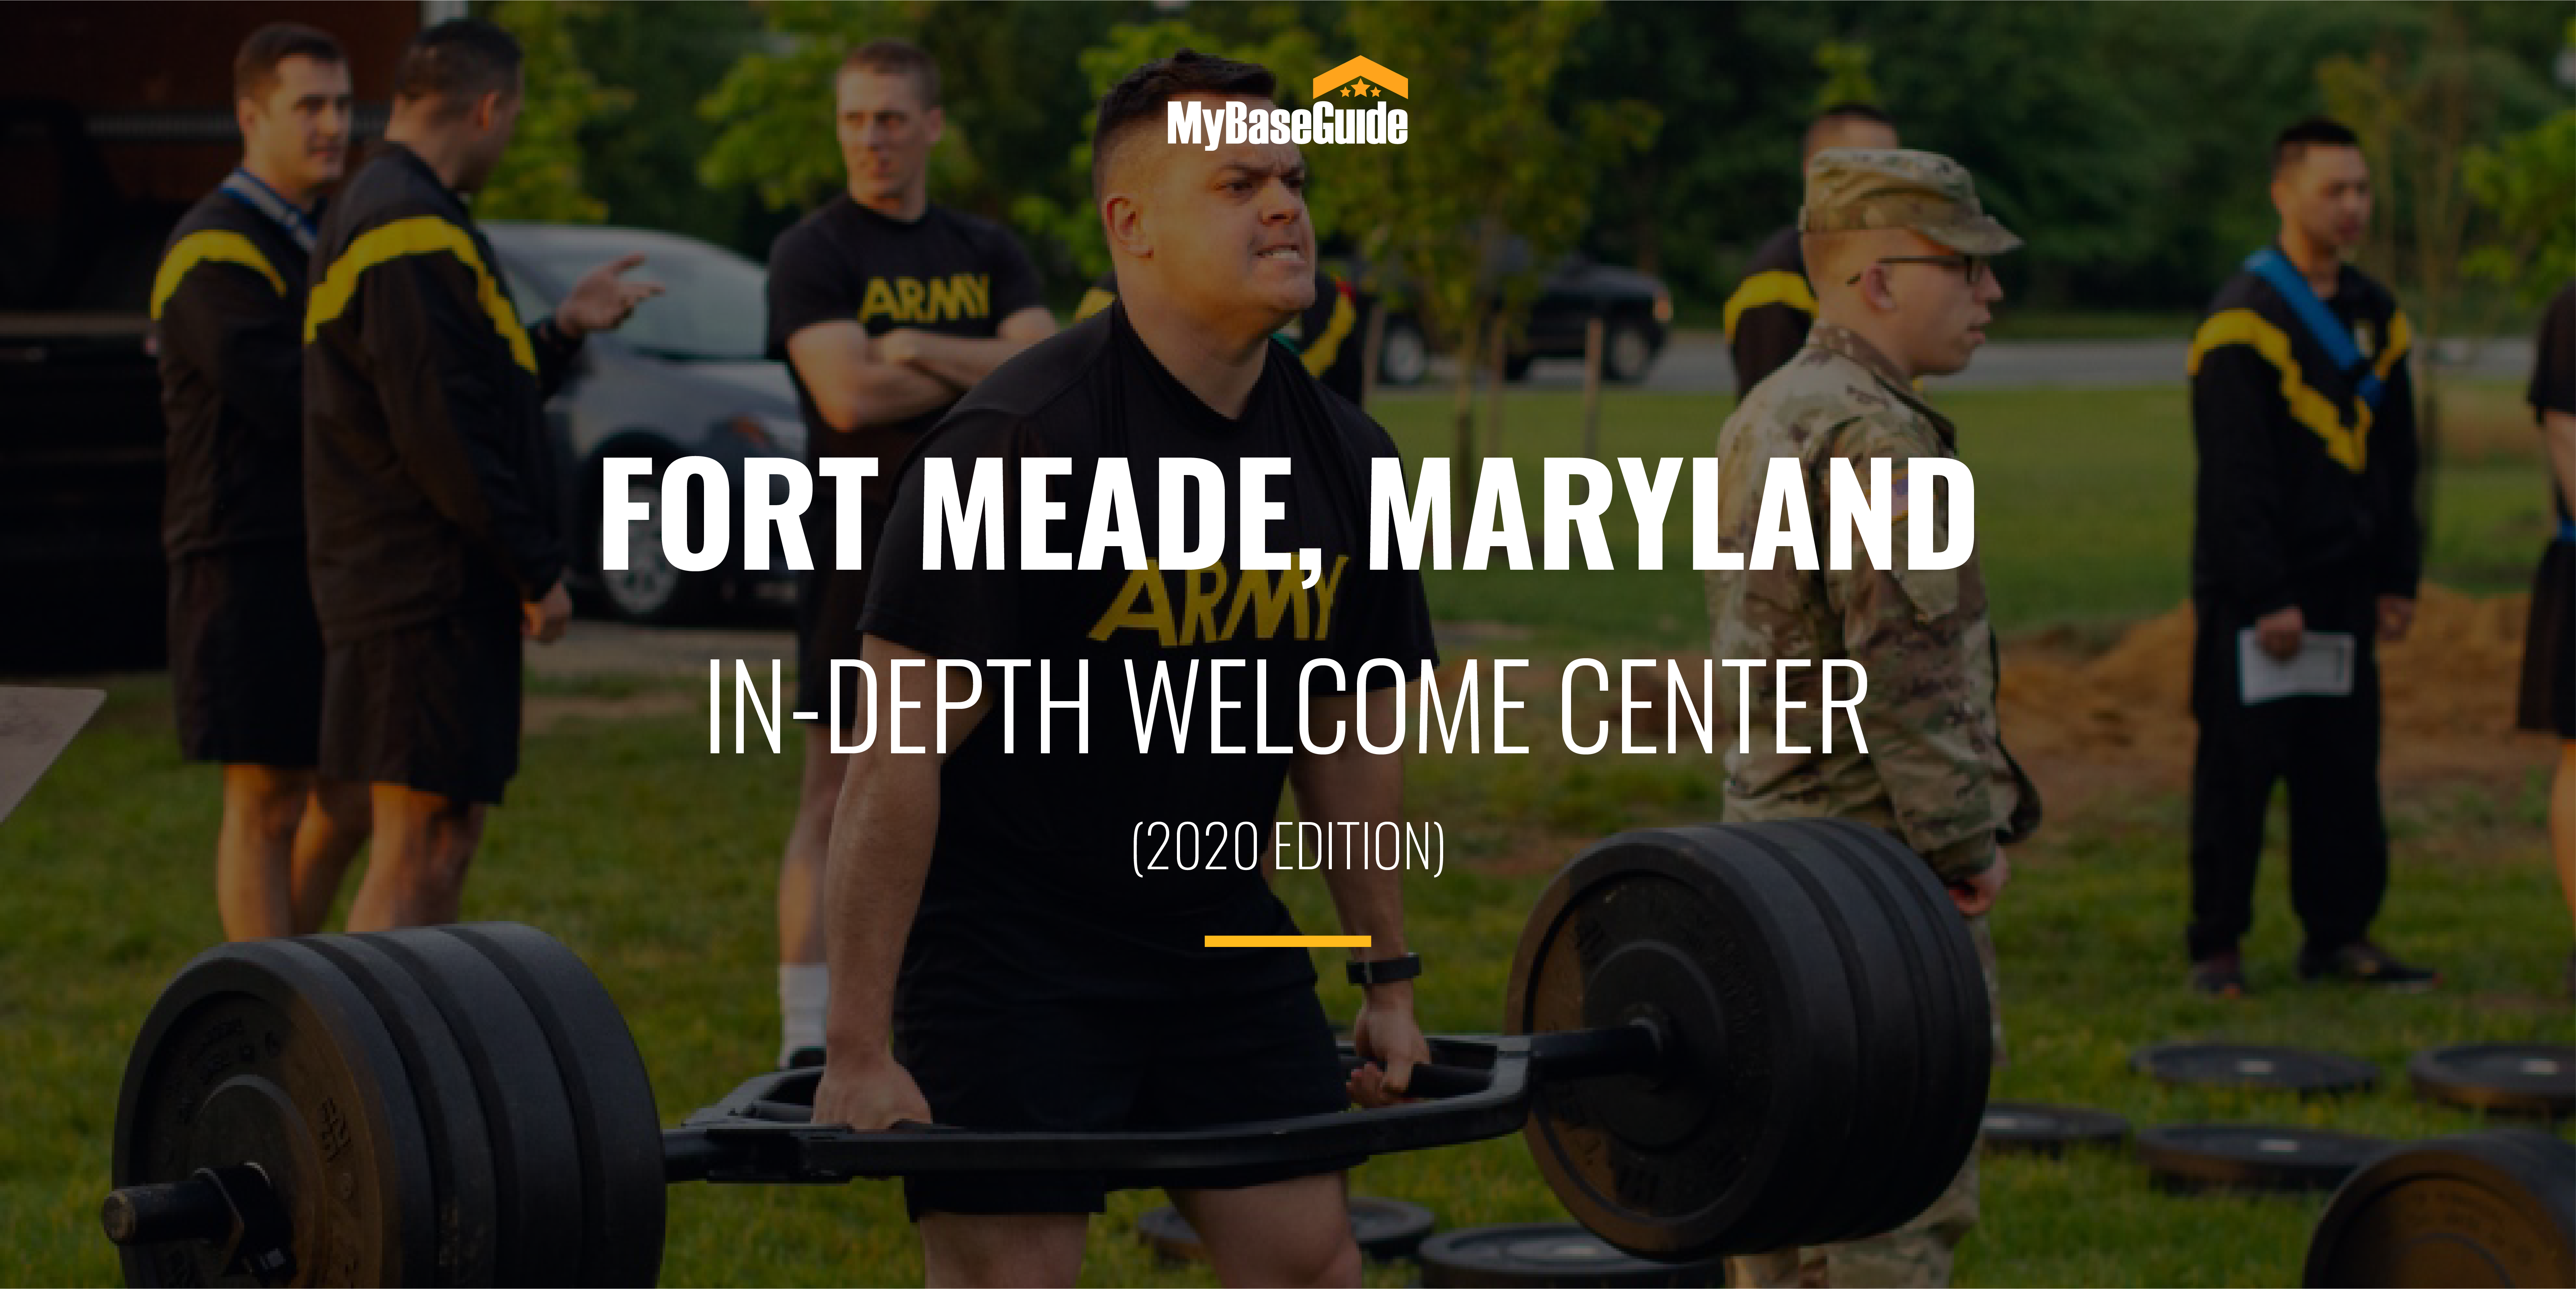 Fort Meade Maryland: In-Depth Welcome Center